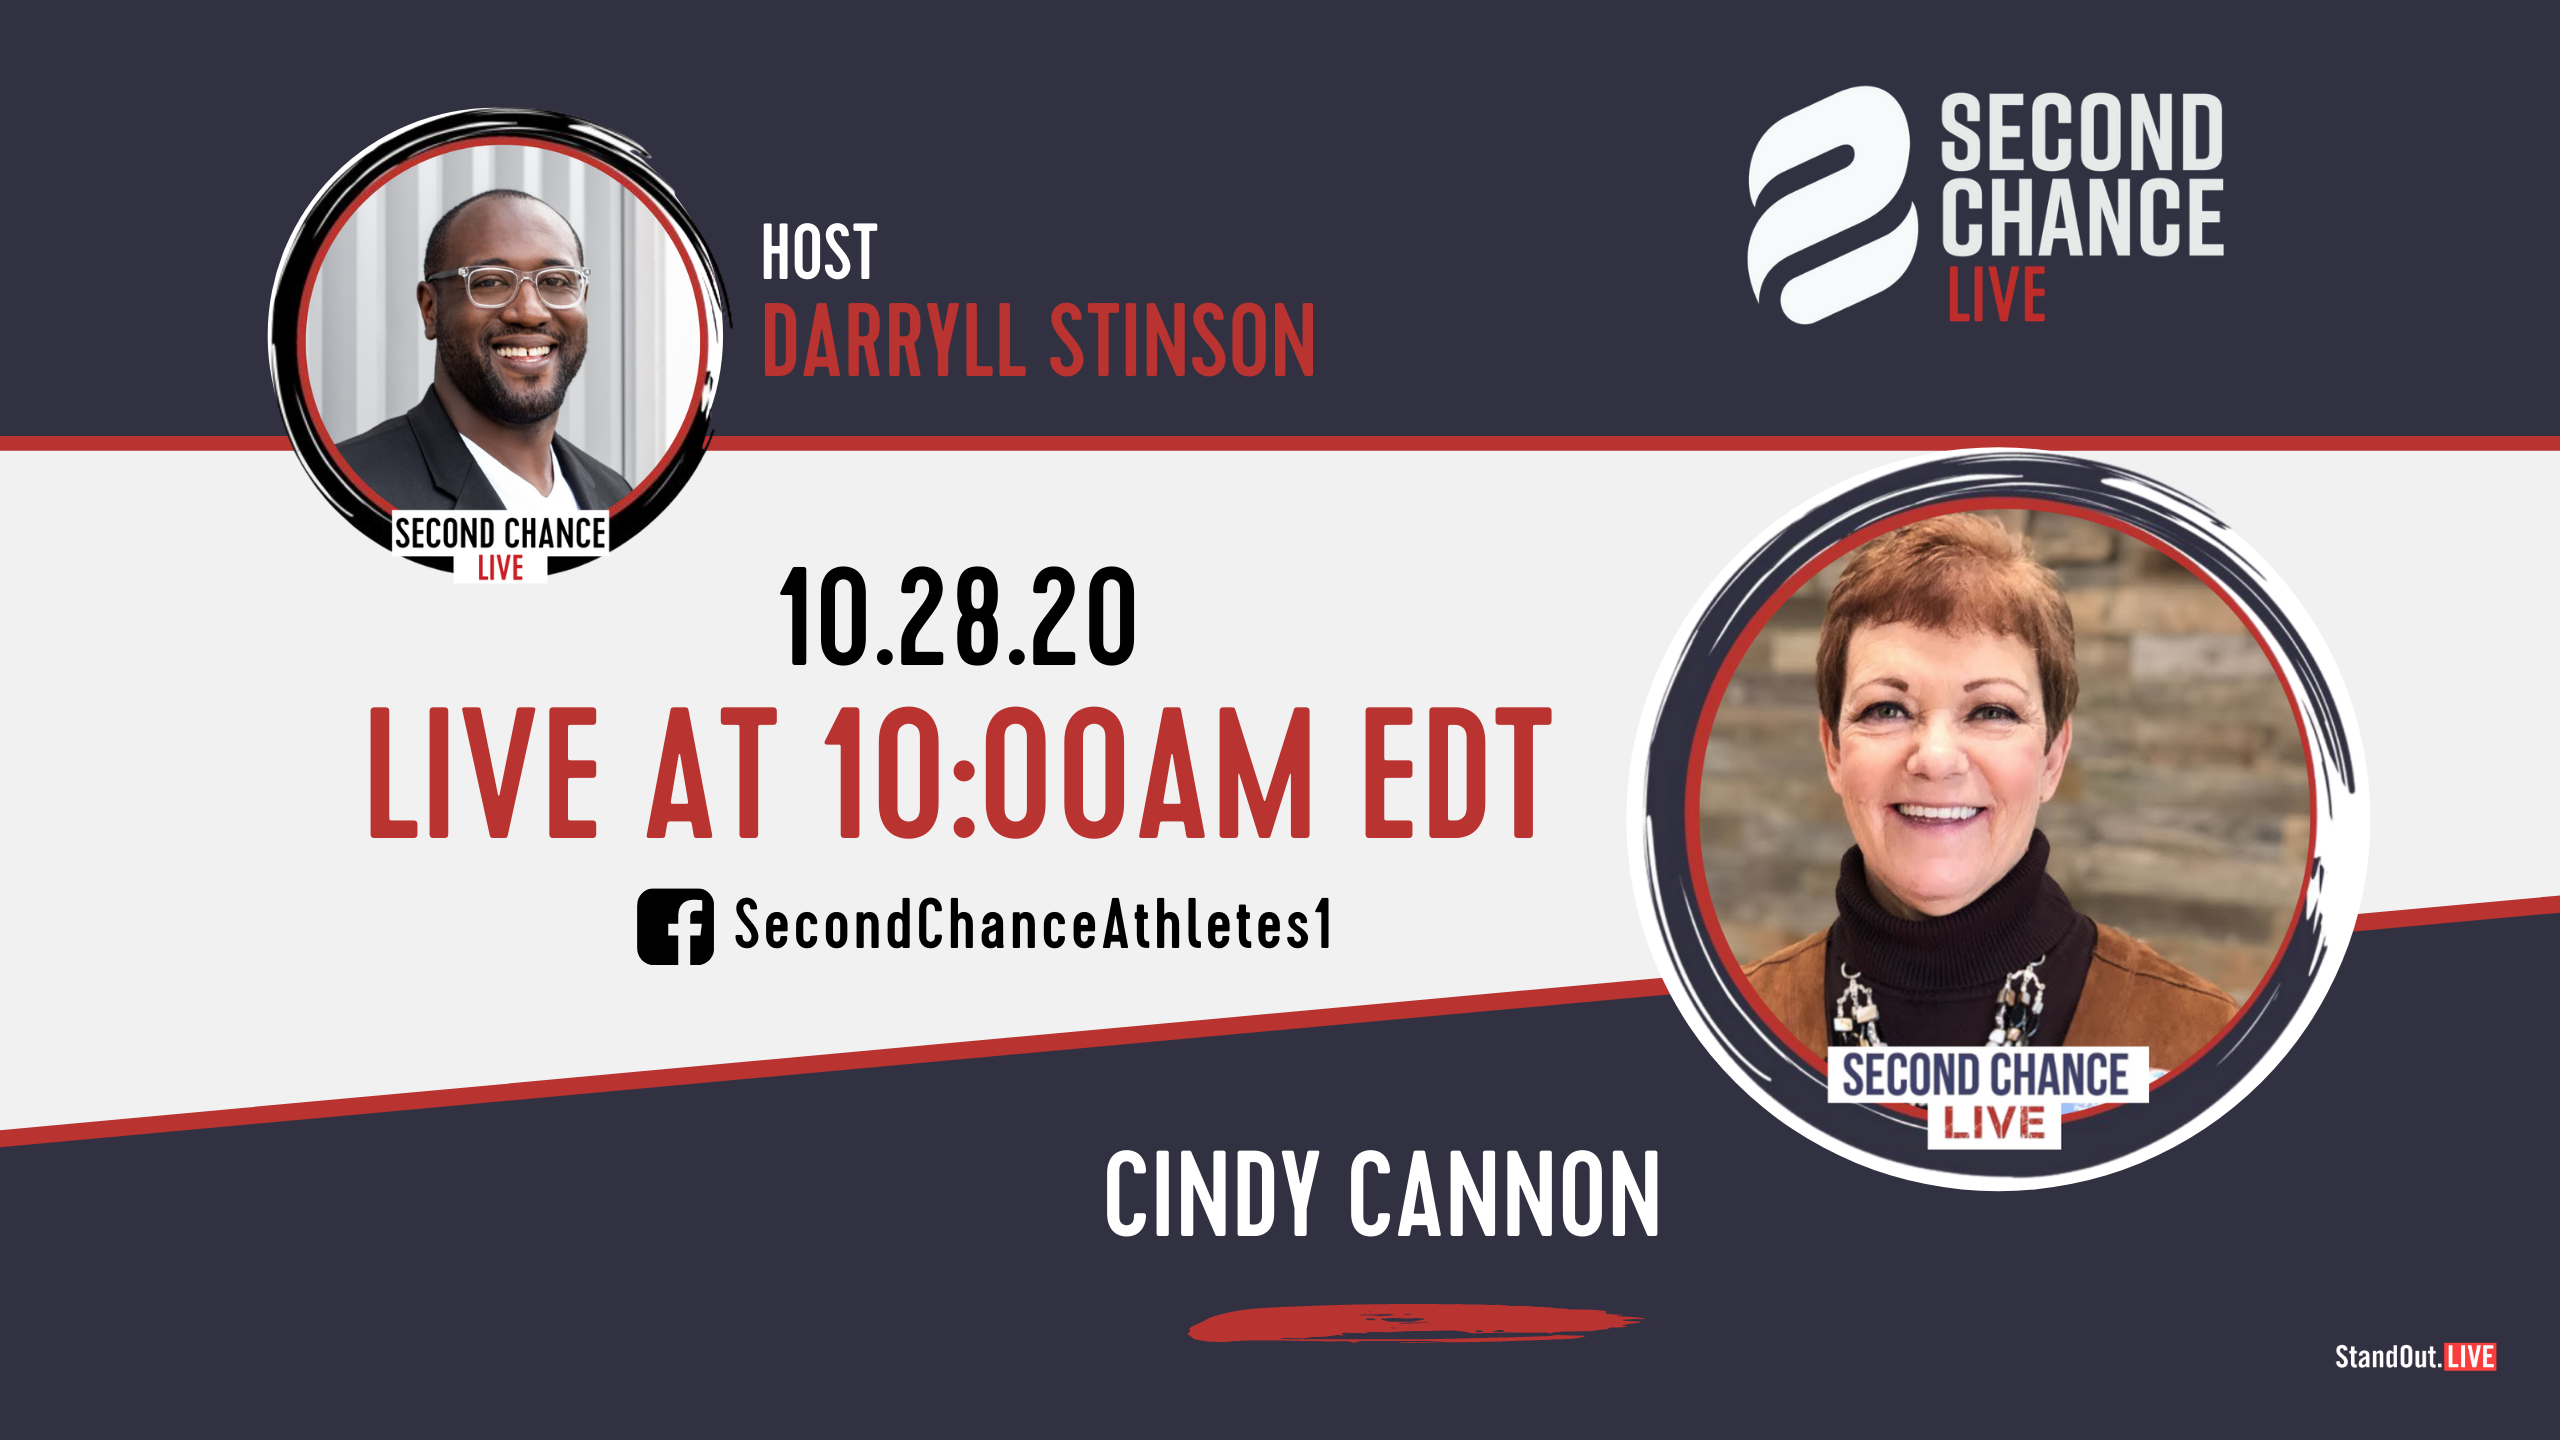 Second Chance LIVE -with Cindy Cannon